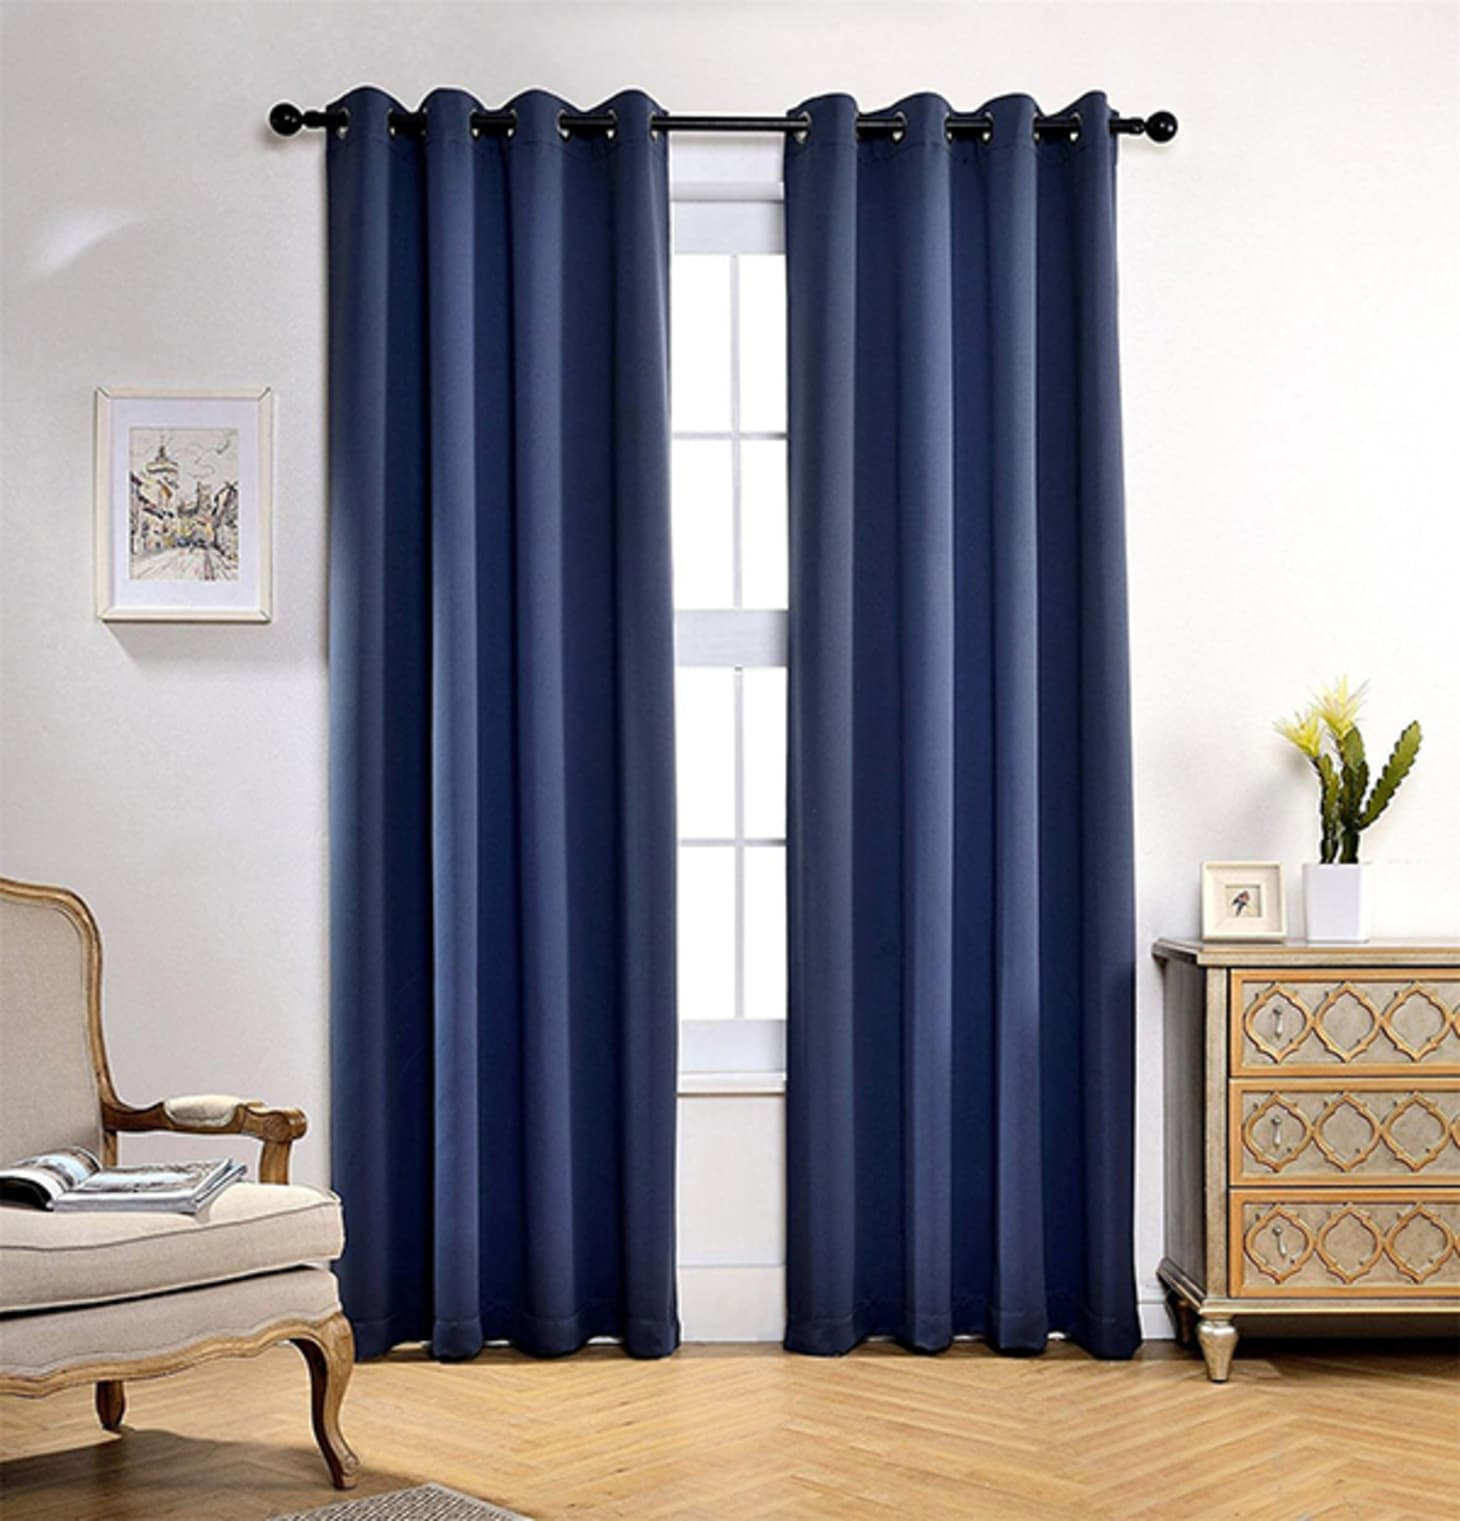 Best Insulated Blackout Curtains | Apartment Therapy Intended For Grommet Top Thermal Insulated Blackout Curtain Panel Pairs (View 19 of 20)